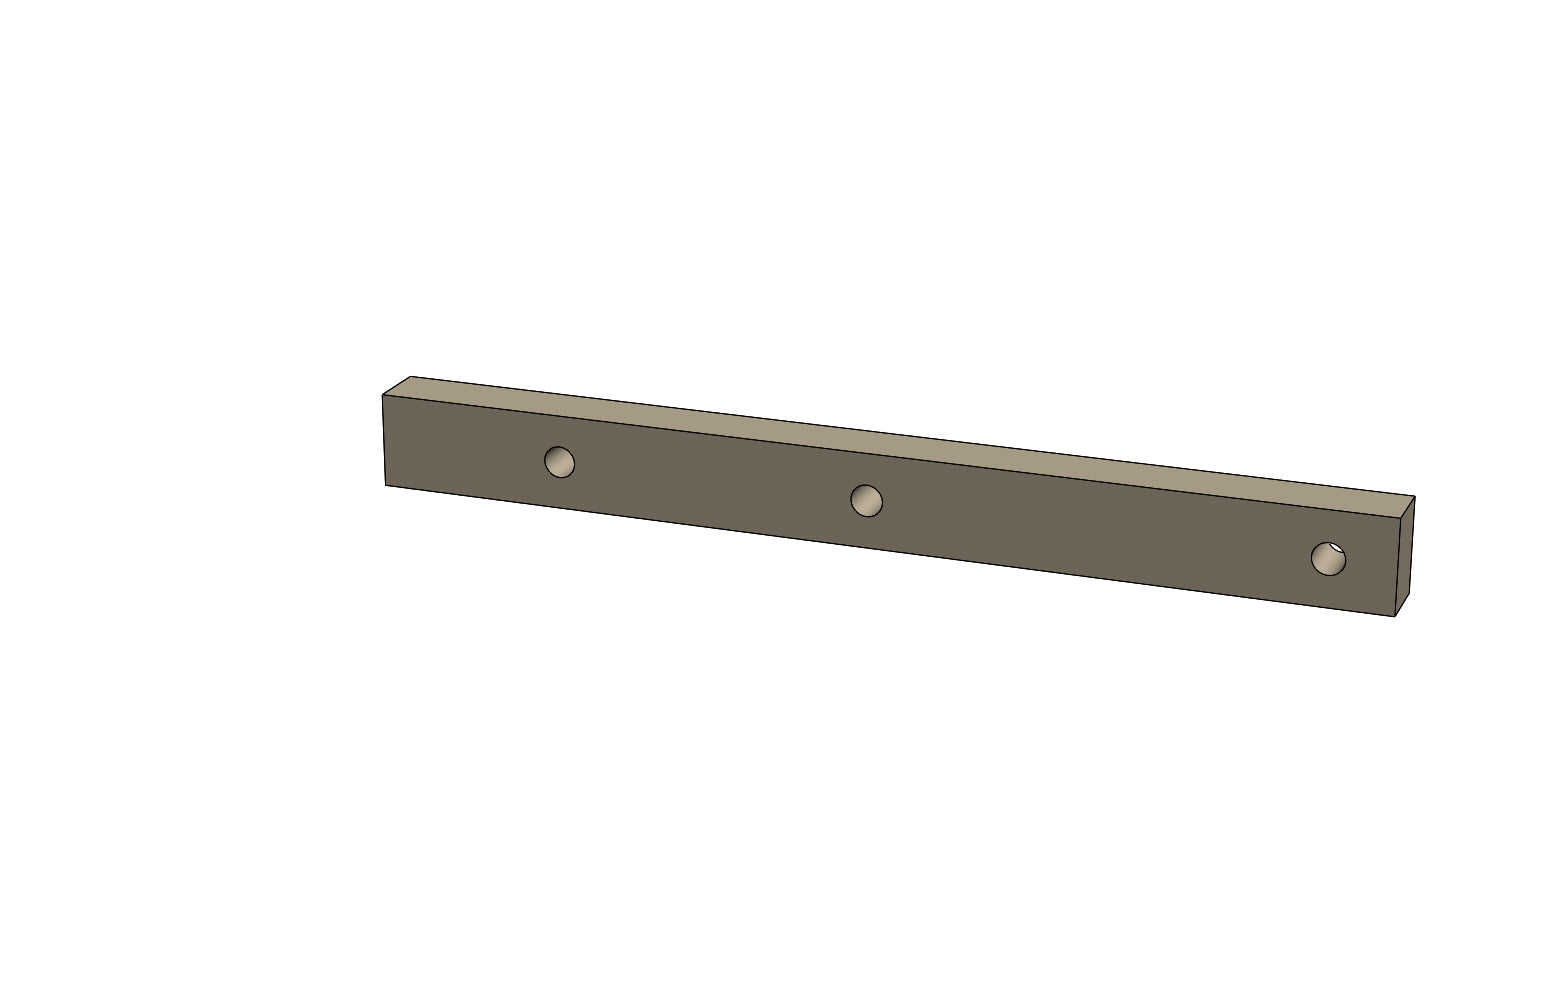 C01108 - CARRIAGE GUIDE PLATE TOP - King CF100 Spare Part